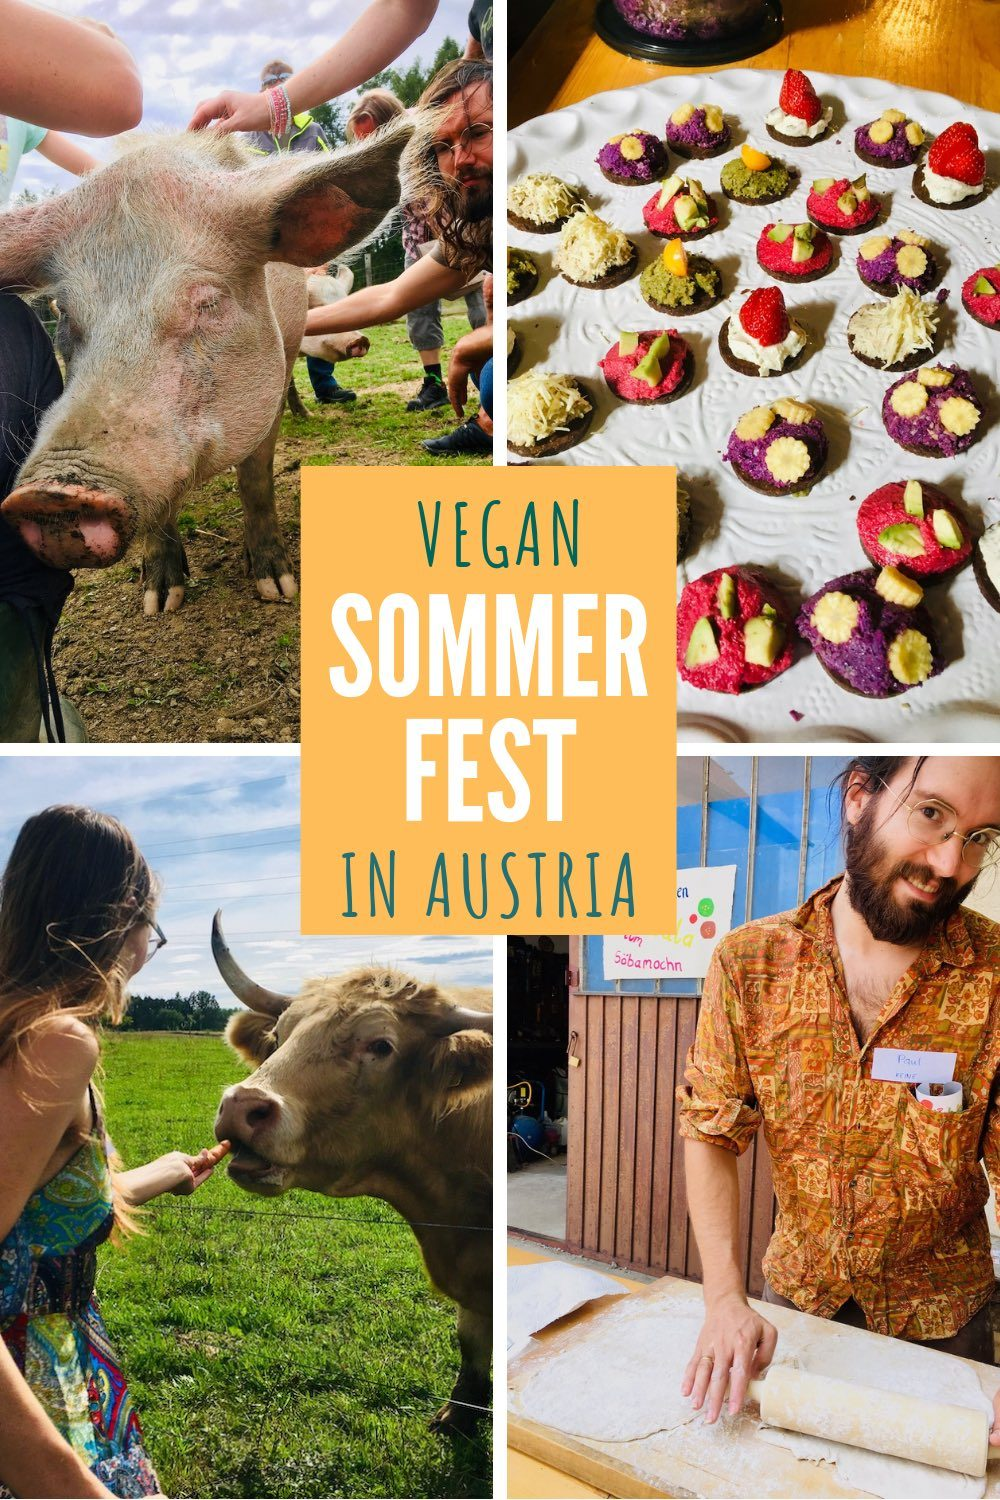 A collage of images from the festival - a pig, colourful canapes, Sophie feeding a cow and Paul cooking a flatbread.